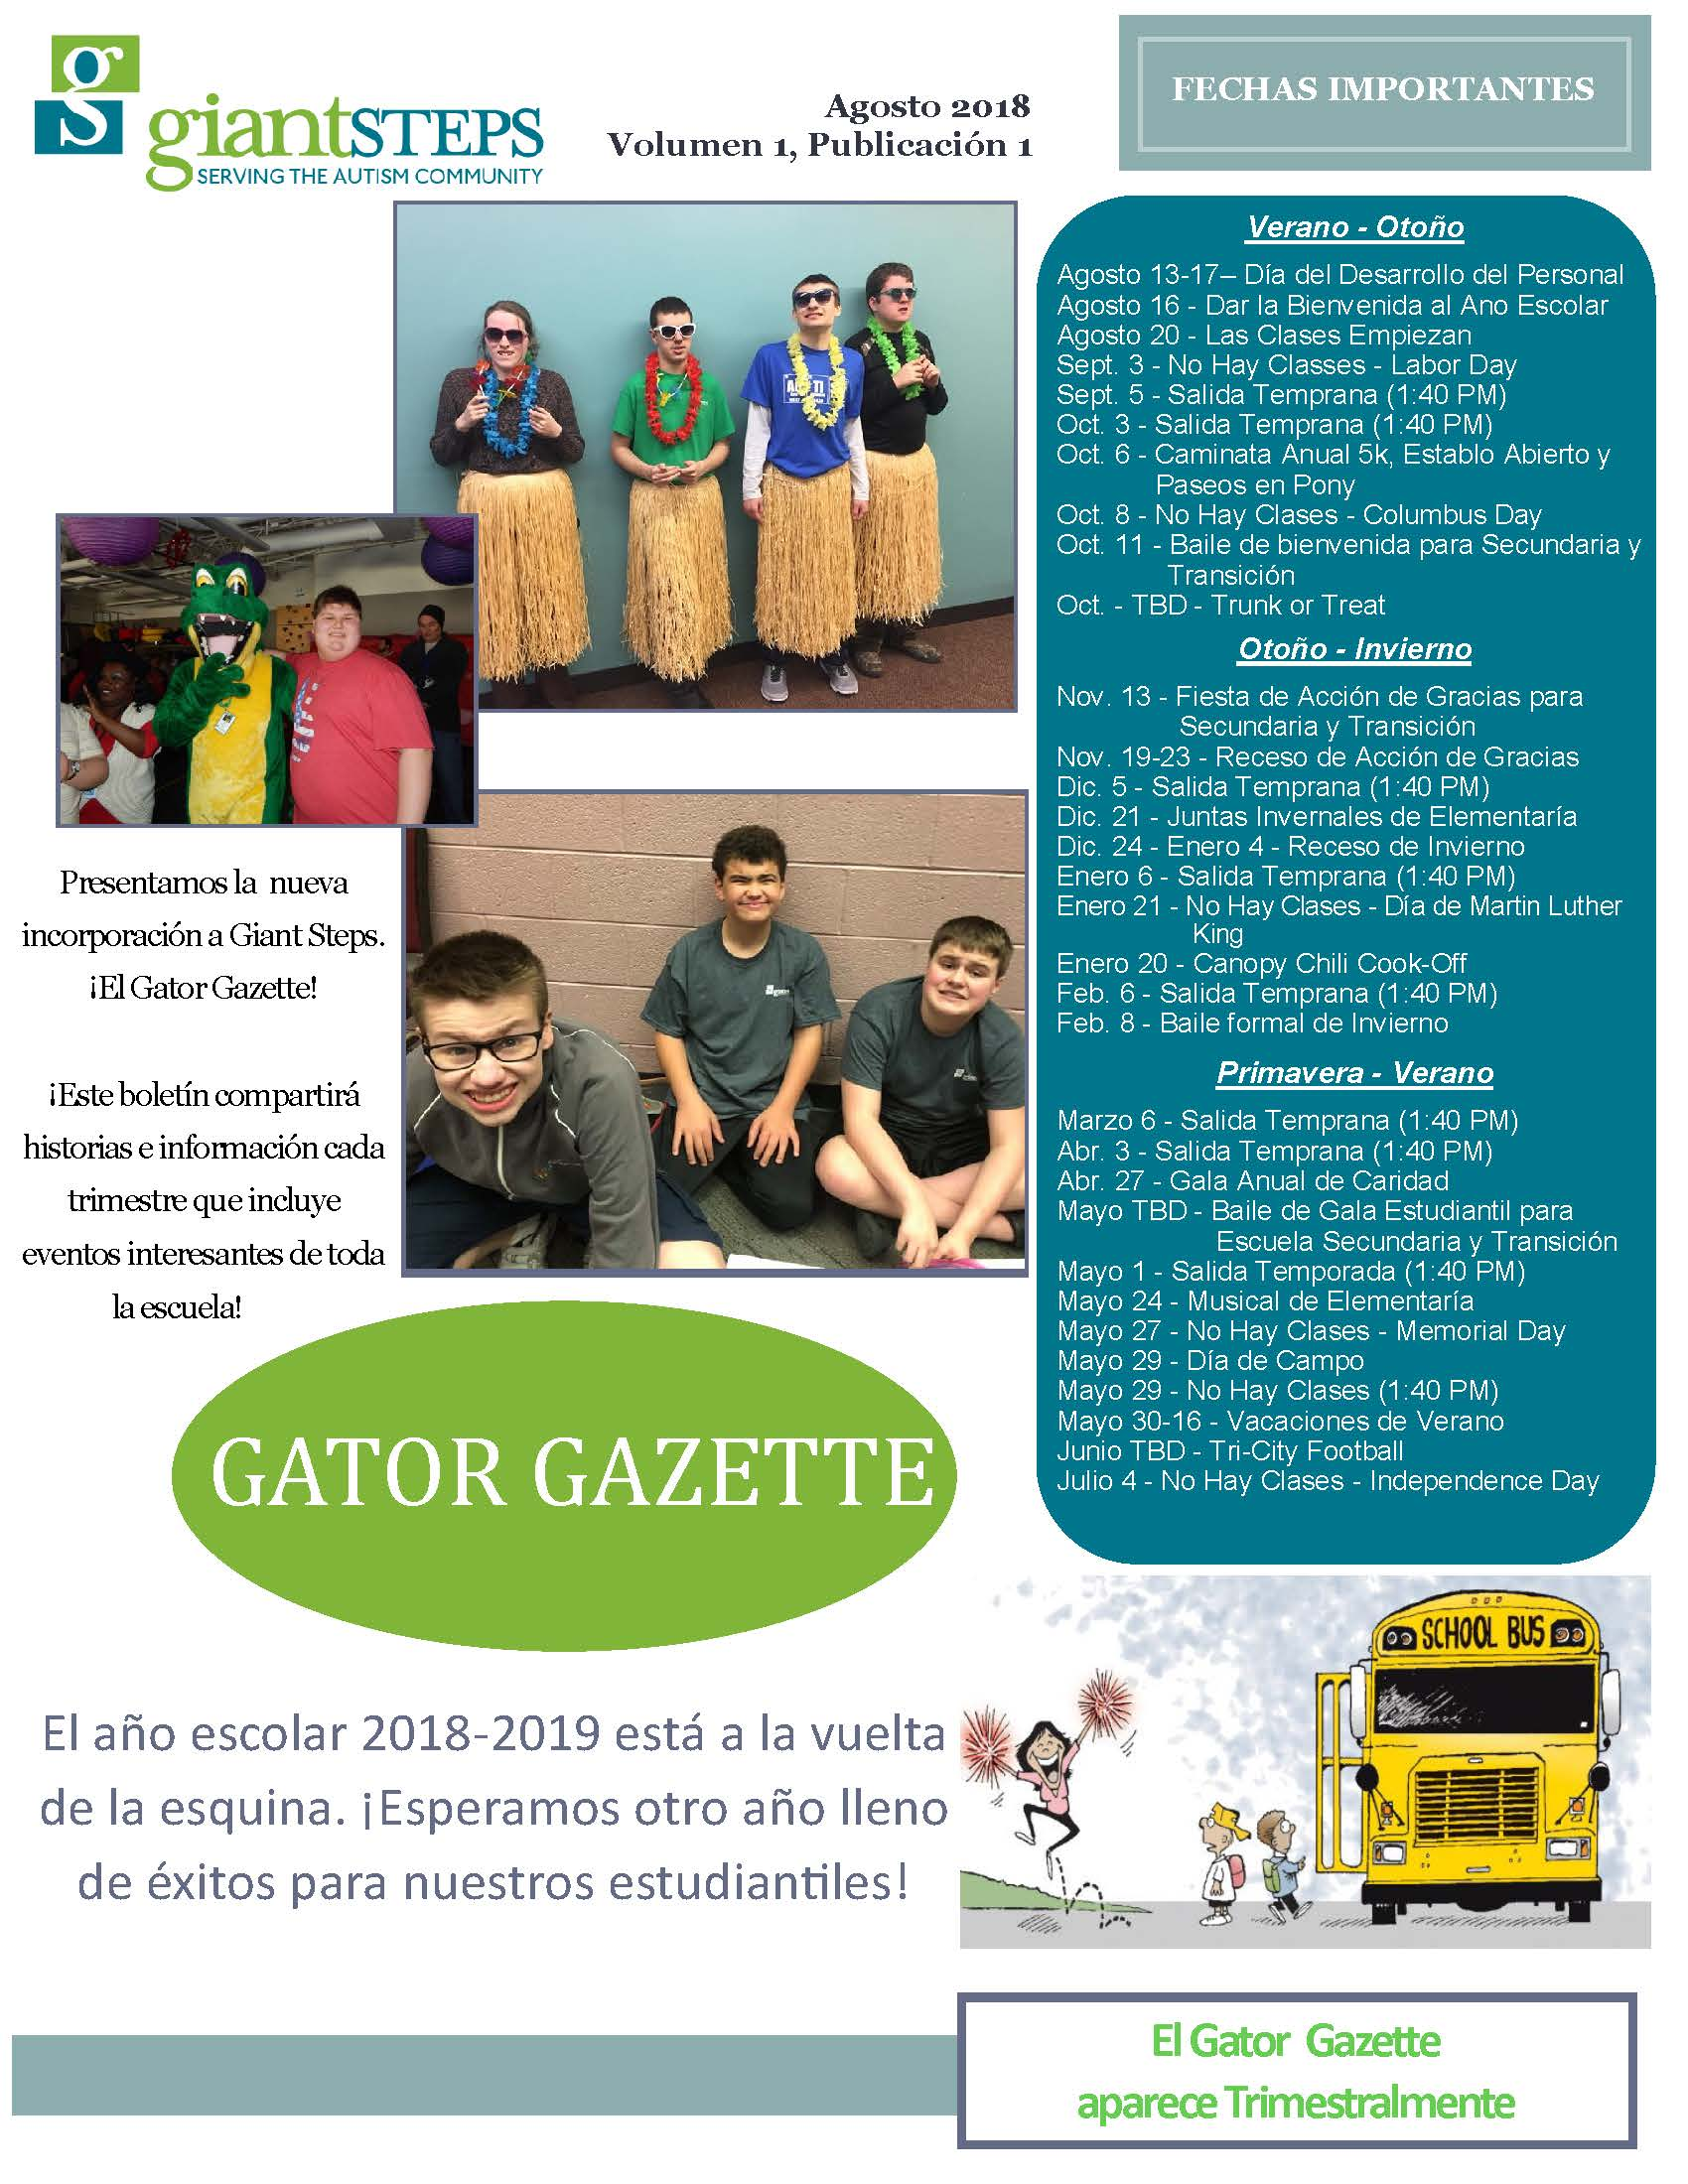 Gator Gazette Issue 1, Volume 1 [Spanish] Cover